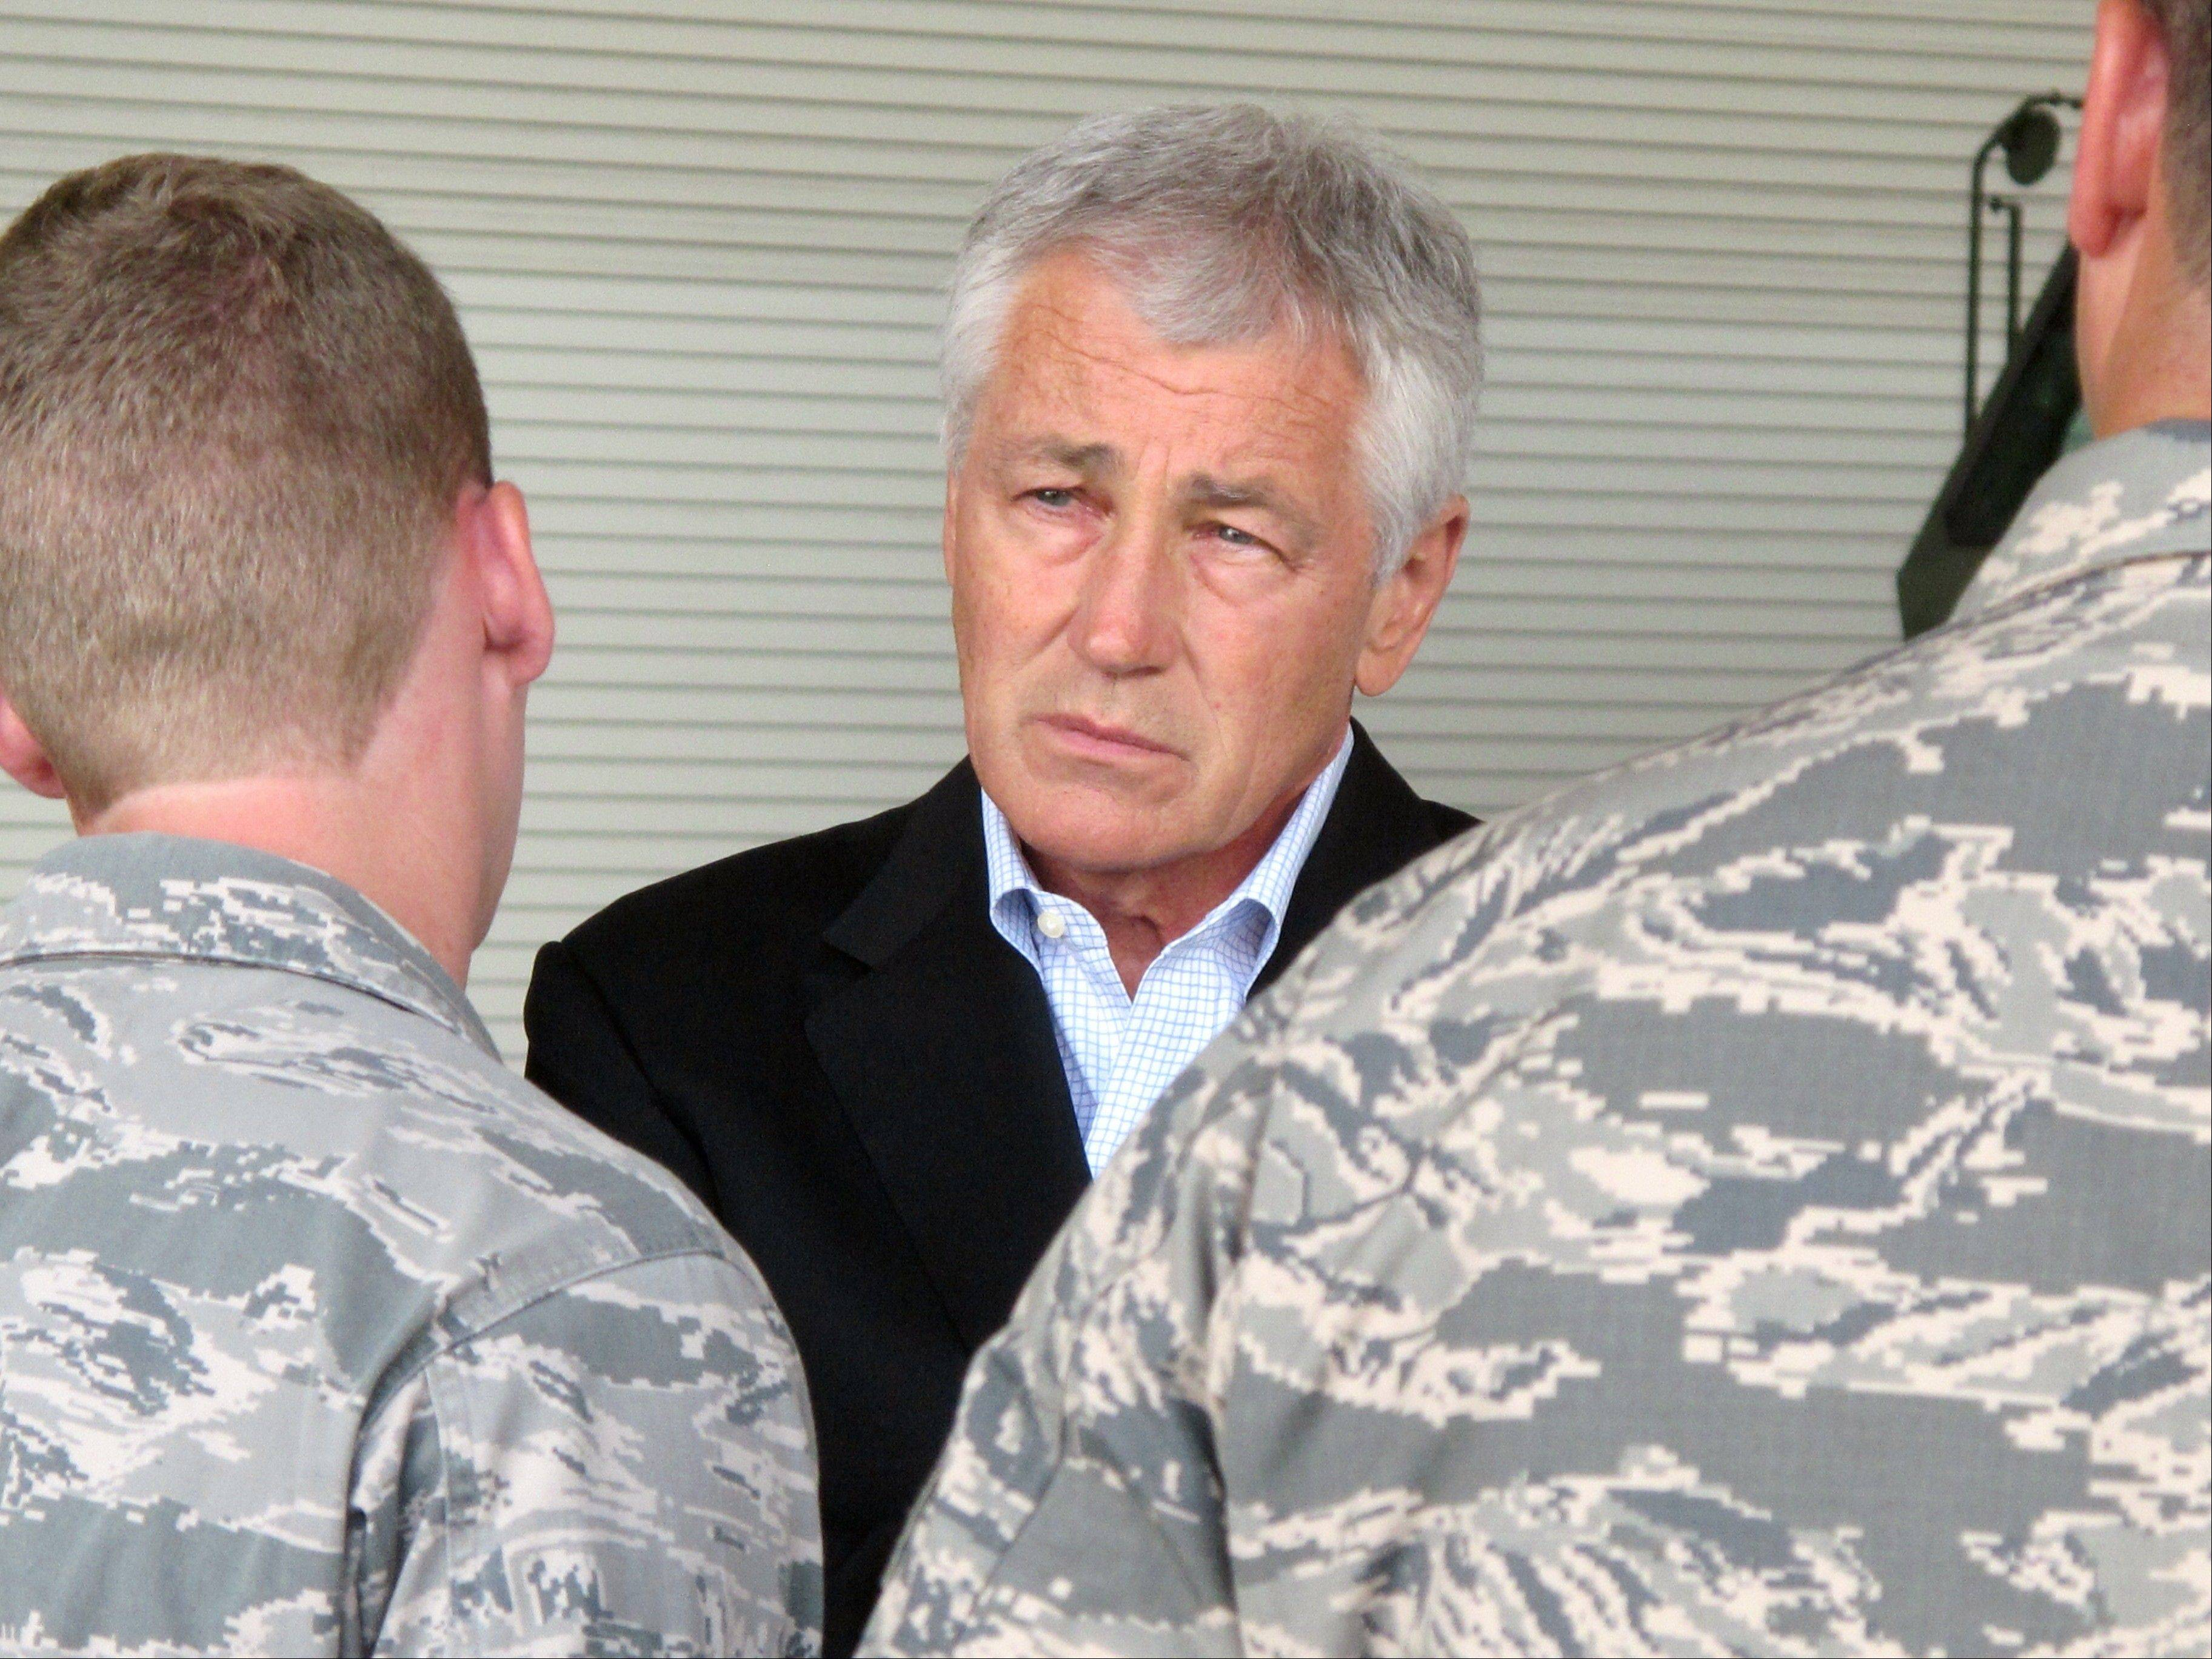 ASSOCIATED PRESS Defense Secretary Chuck Hagel talks with Air Force personnel at Joint Base Charleston near Charleston, S.C., July 17, the last day of a three-day trip to visit bases in the Carolinas and Florida. Hagel informed Penatagon employees that cost-cutting furloughs will continue.